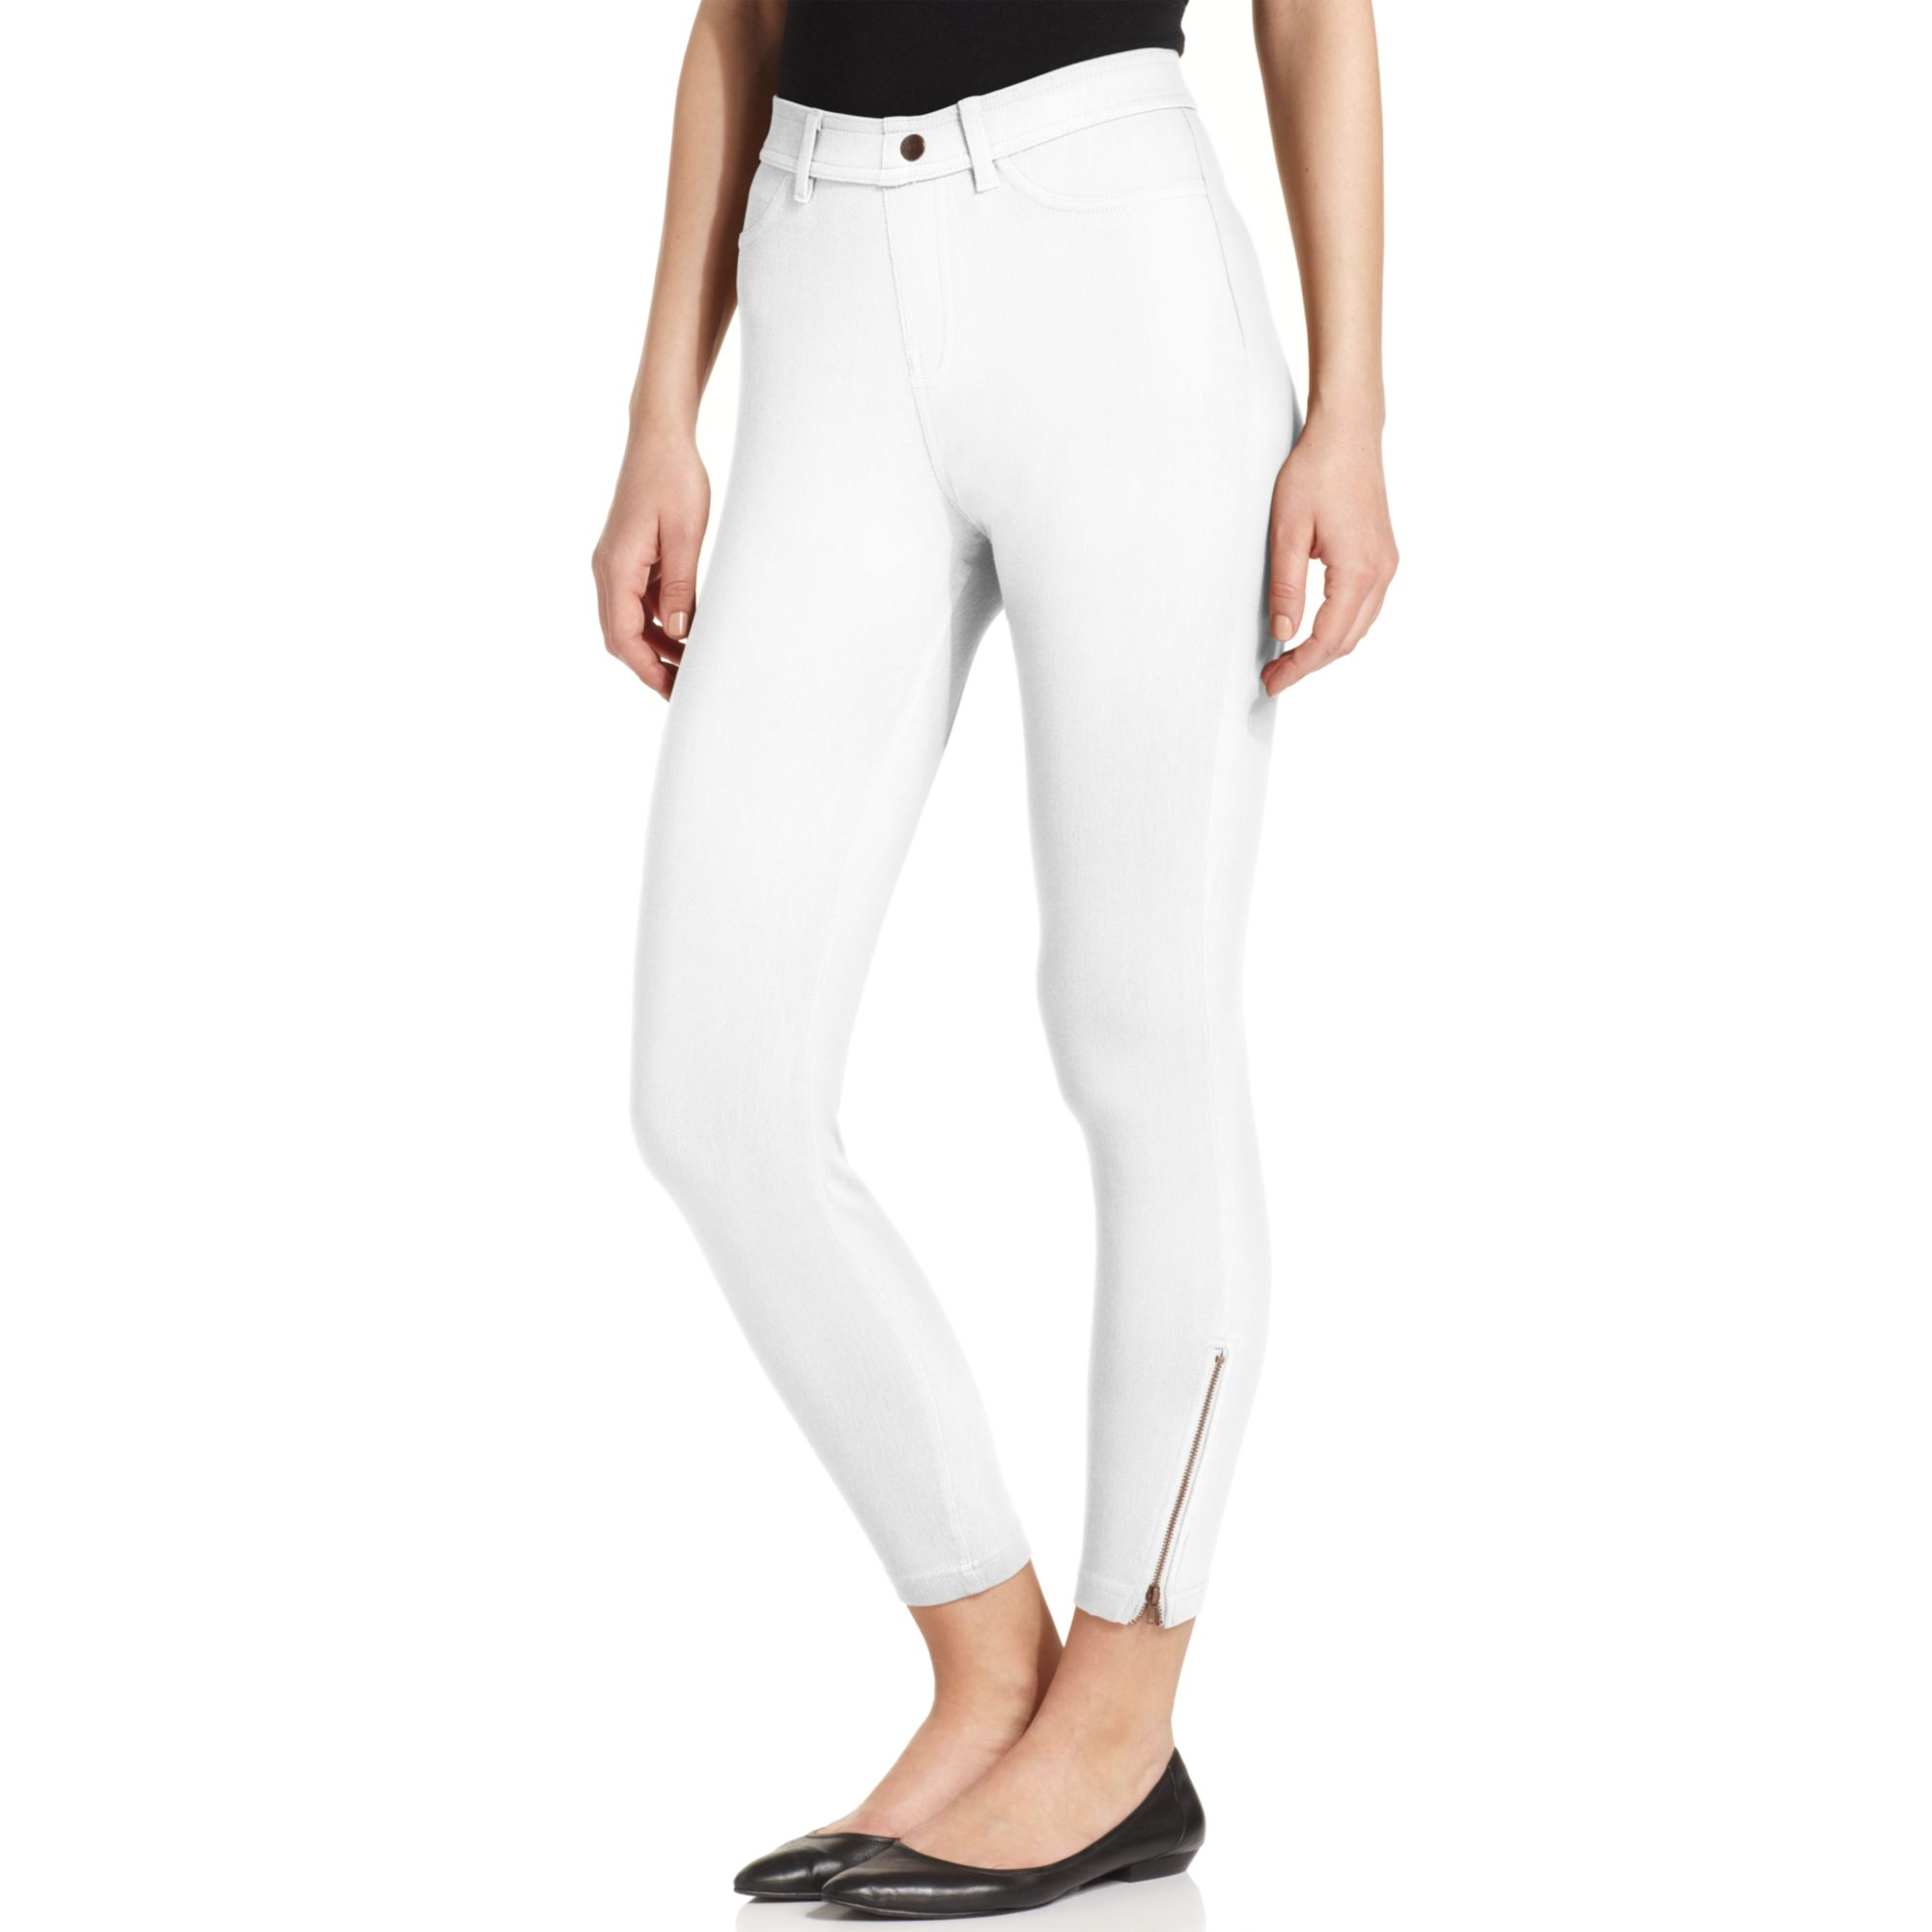 White Hue Leggings